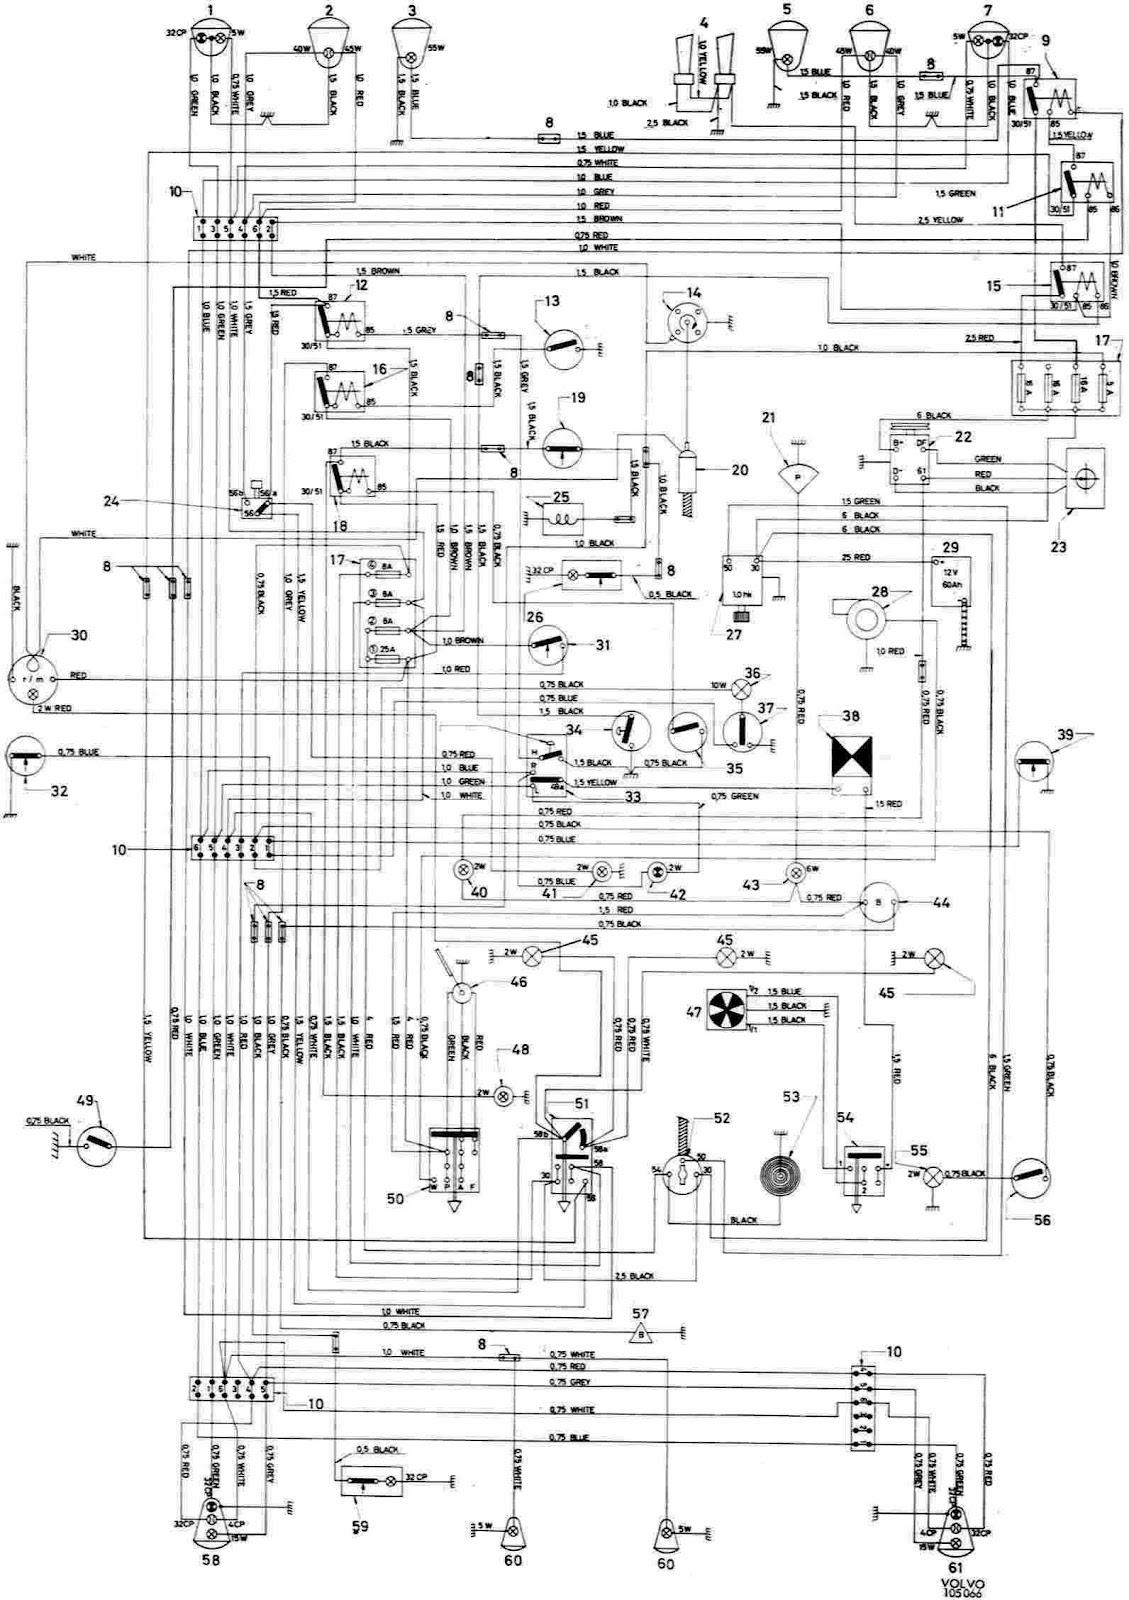 Volvo+123+GT+Complete+Wiring+Diagram hu 613 wiring diagram boat wiring diagram \u2022 wiring diagrams j Jon Boat Lowe 1960 at sewacar.co